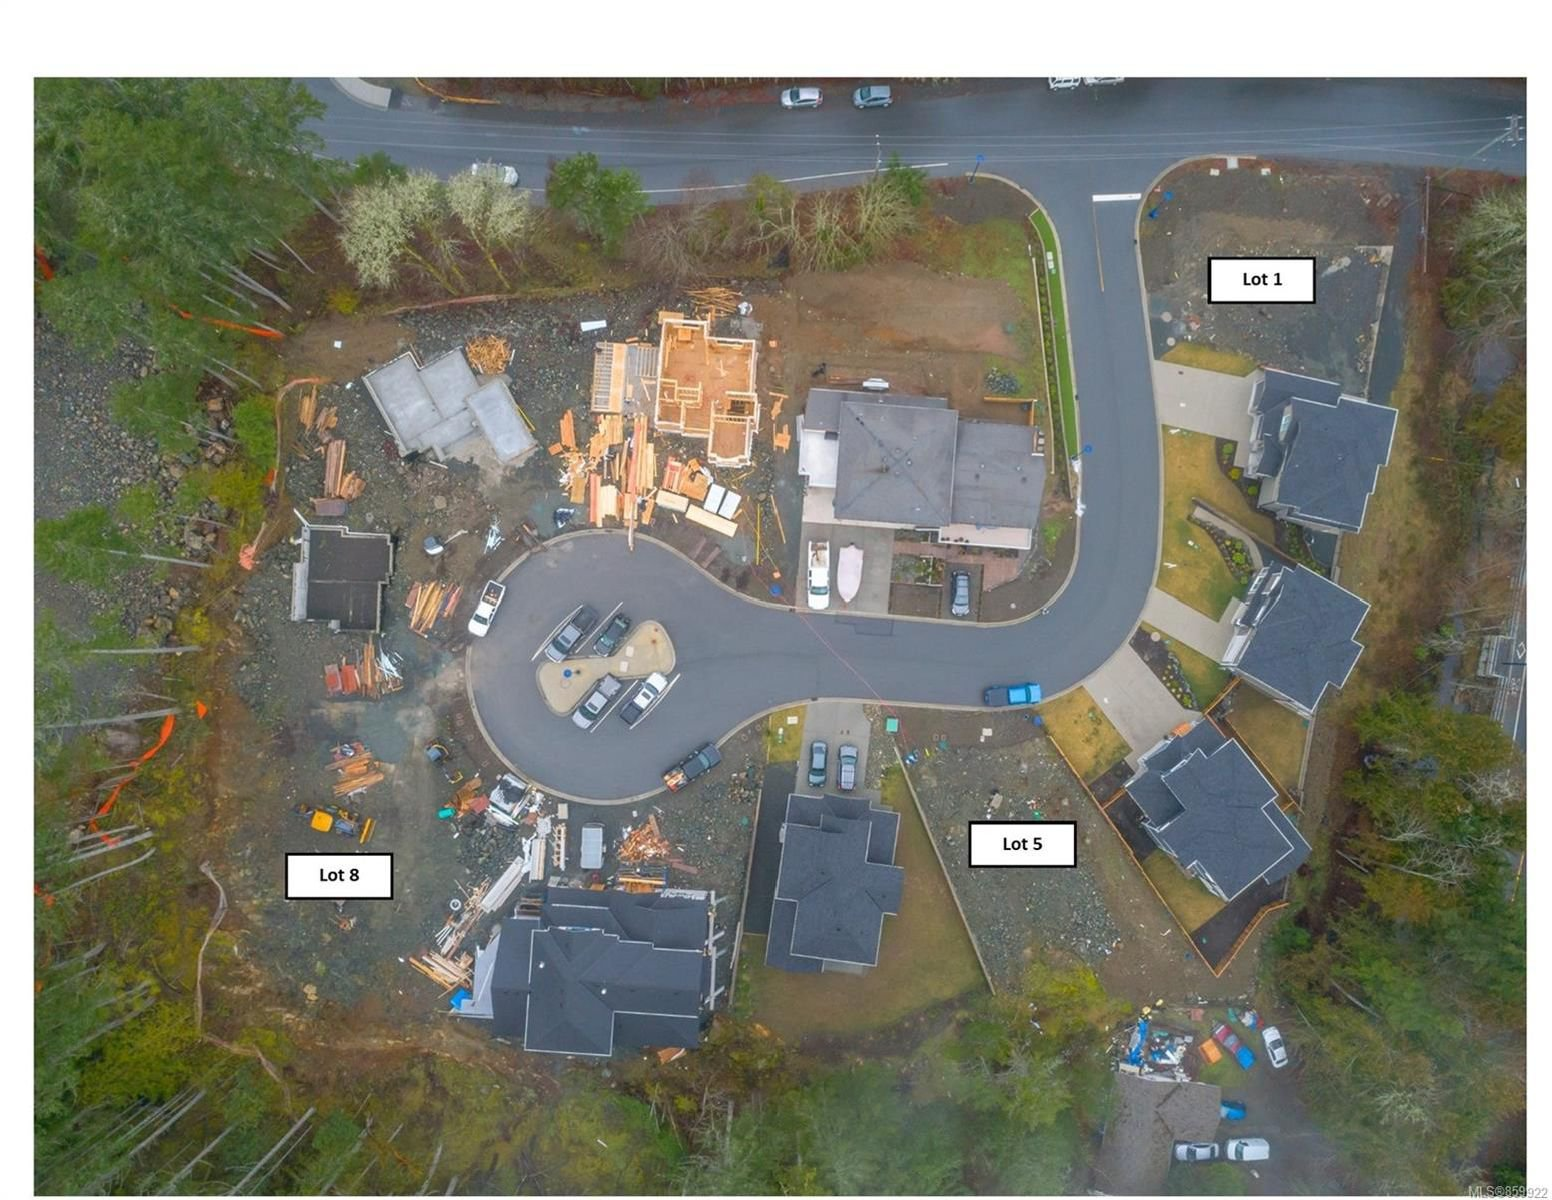 Main Photo: 3631 Urban Rise in : La Olympic View Land for sale (Langford)  : MLS®# 859922